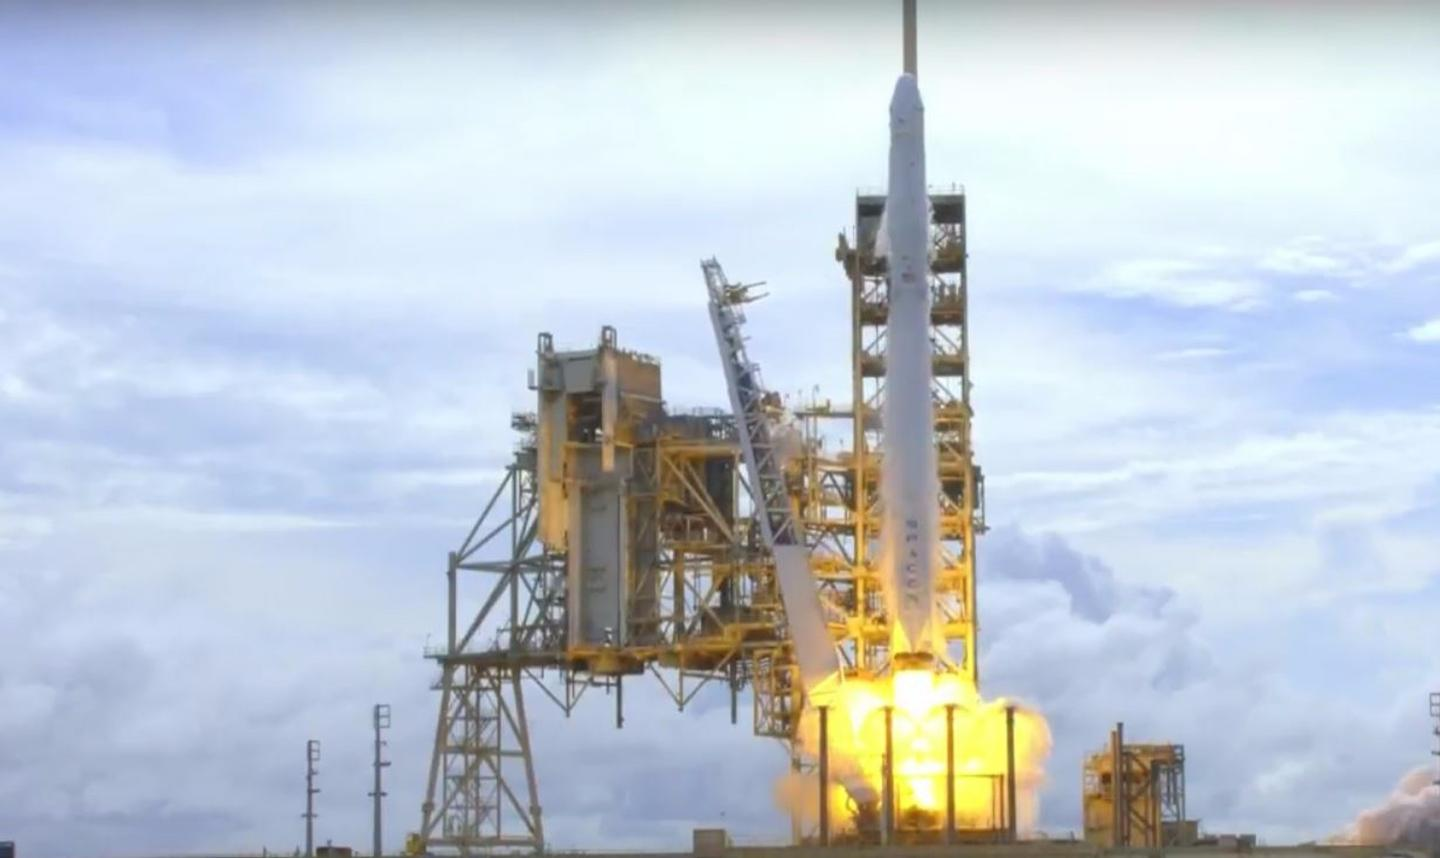 CRS-11 lifting off - the mission marksthe first reflight of a Dragon spacecraft